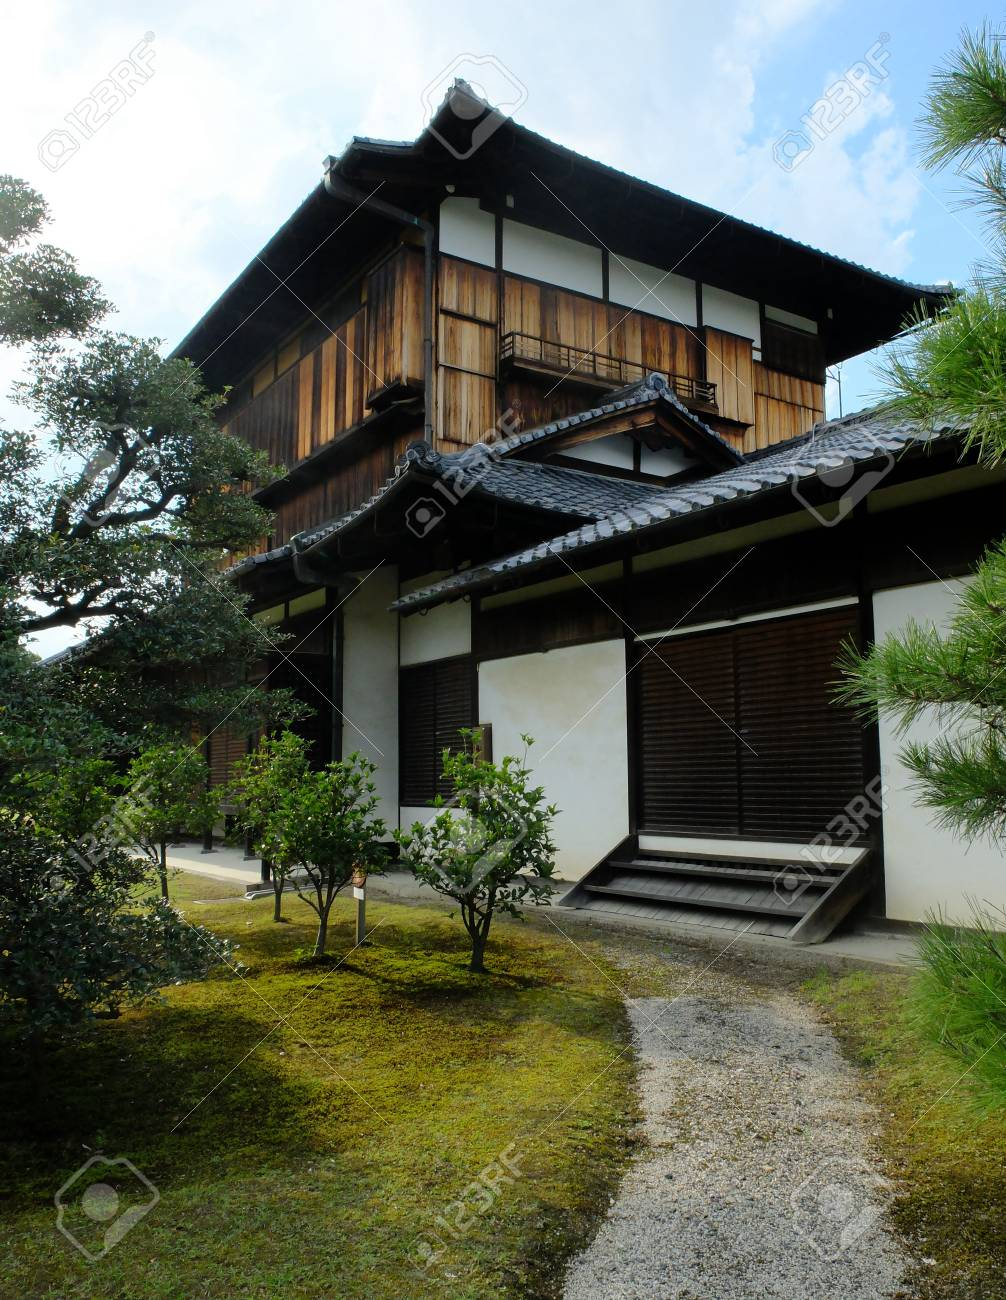 A Traditional Japanese Style House With A Small Beautiful Garden Stock Photo Picture And Royalty Free Image Image 99252729